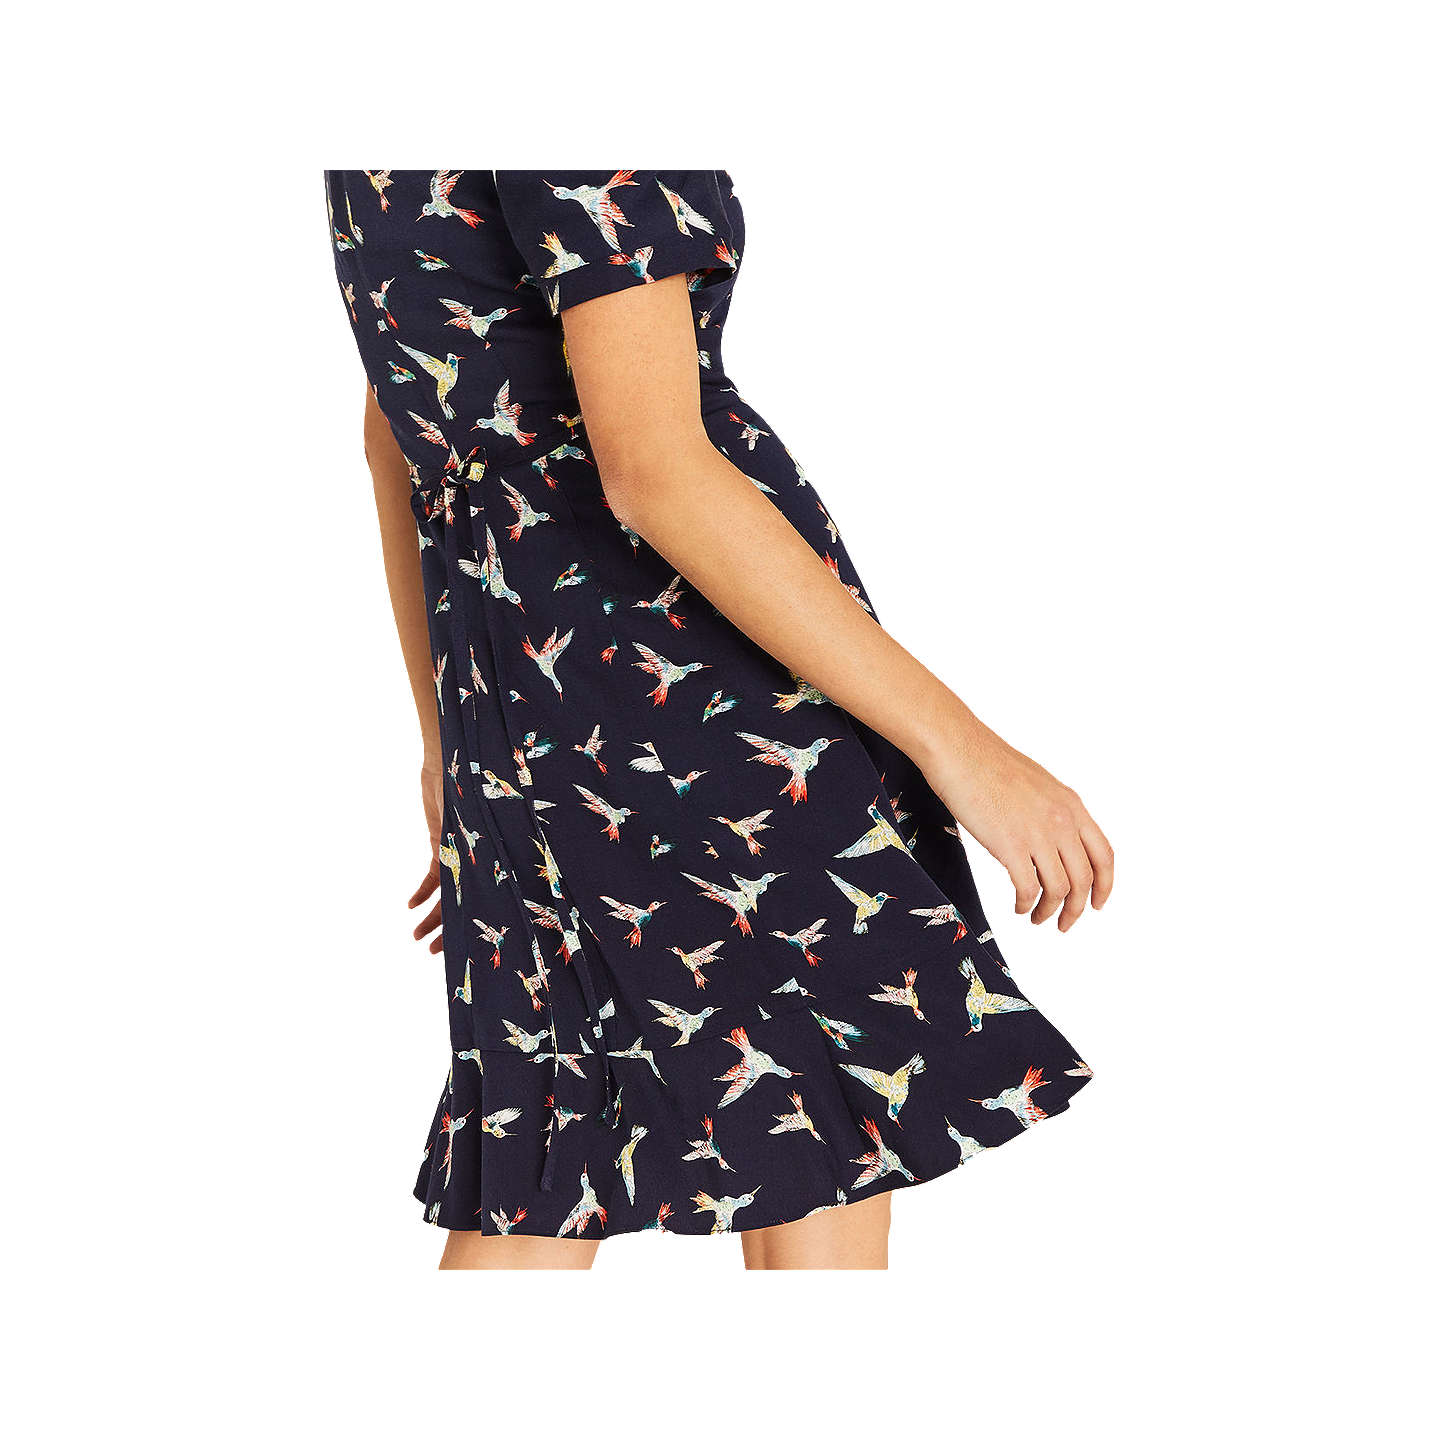 BuyOasis Bird V Neck Dress, Multi/Blue, 6 Online at johnlewis.com